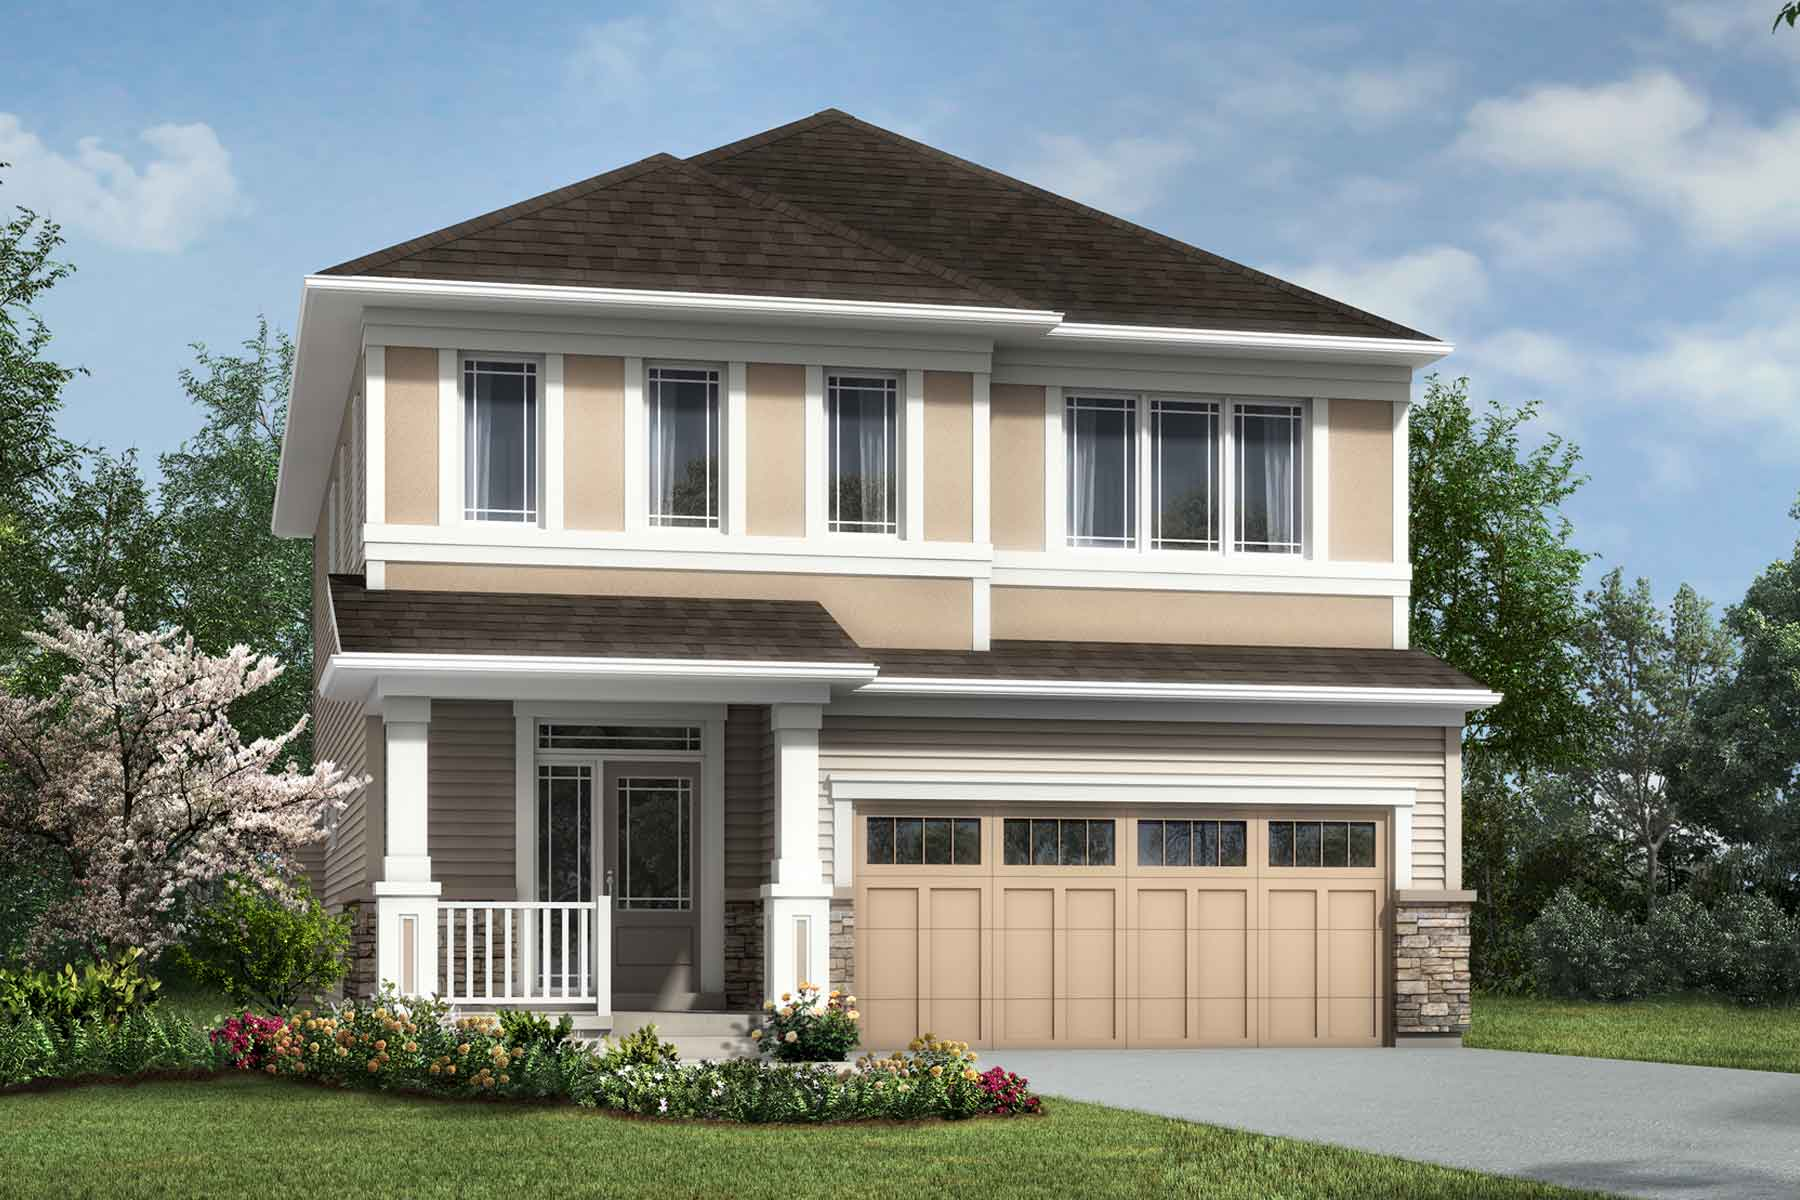 Jade Plan Elevation Front at Carrington in Calgary Alberta by Mattamy Homes